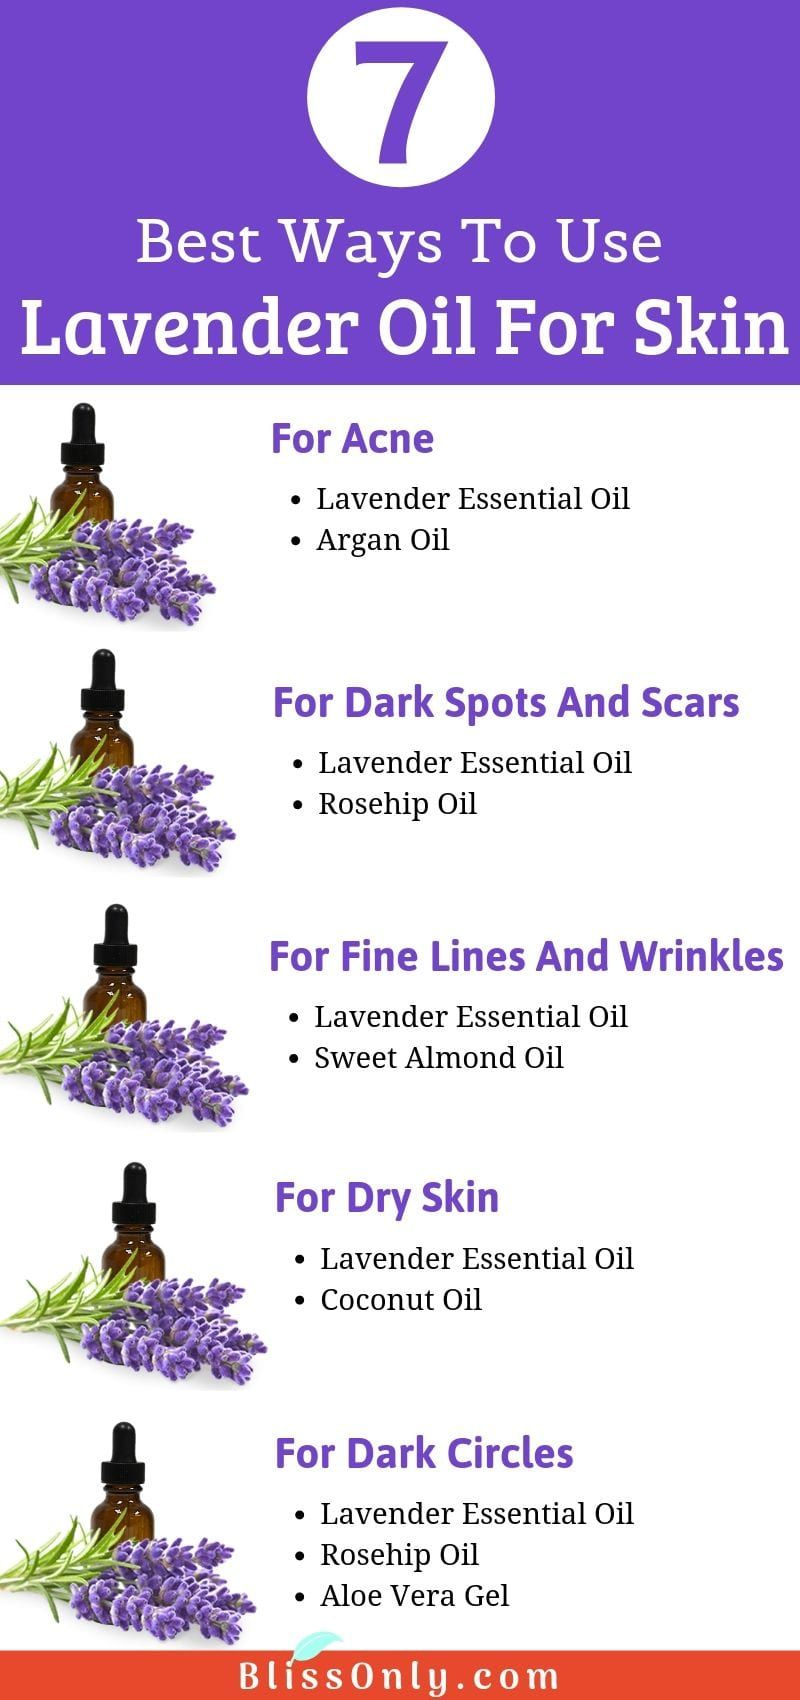 7 Best Ways To Use Lavender Oil For Skin Blissonly Lavender Oil For Skin Oil For Dry Skin Oil Skin Care